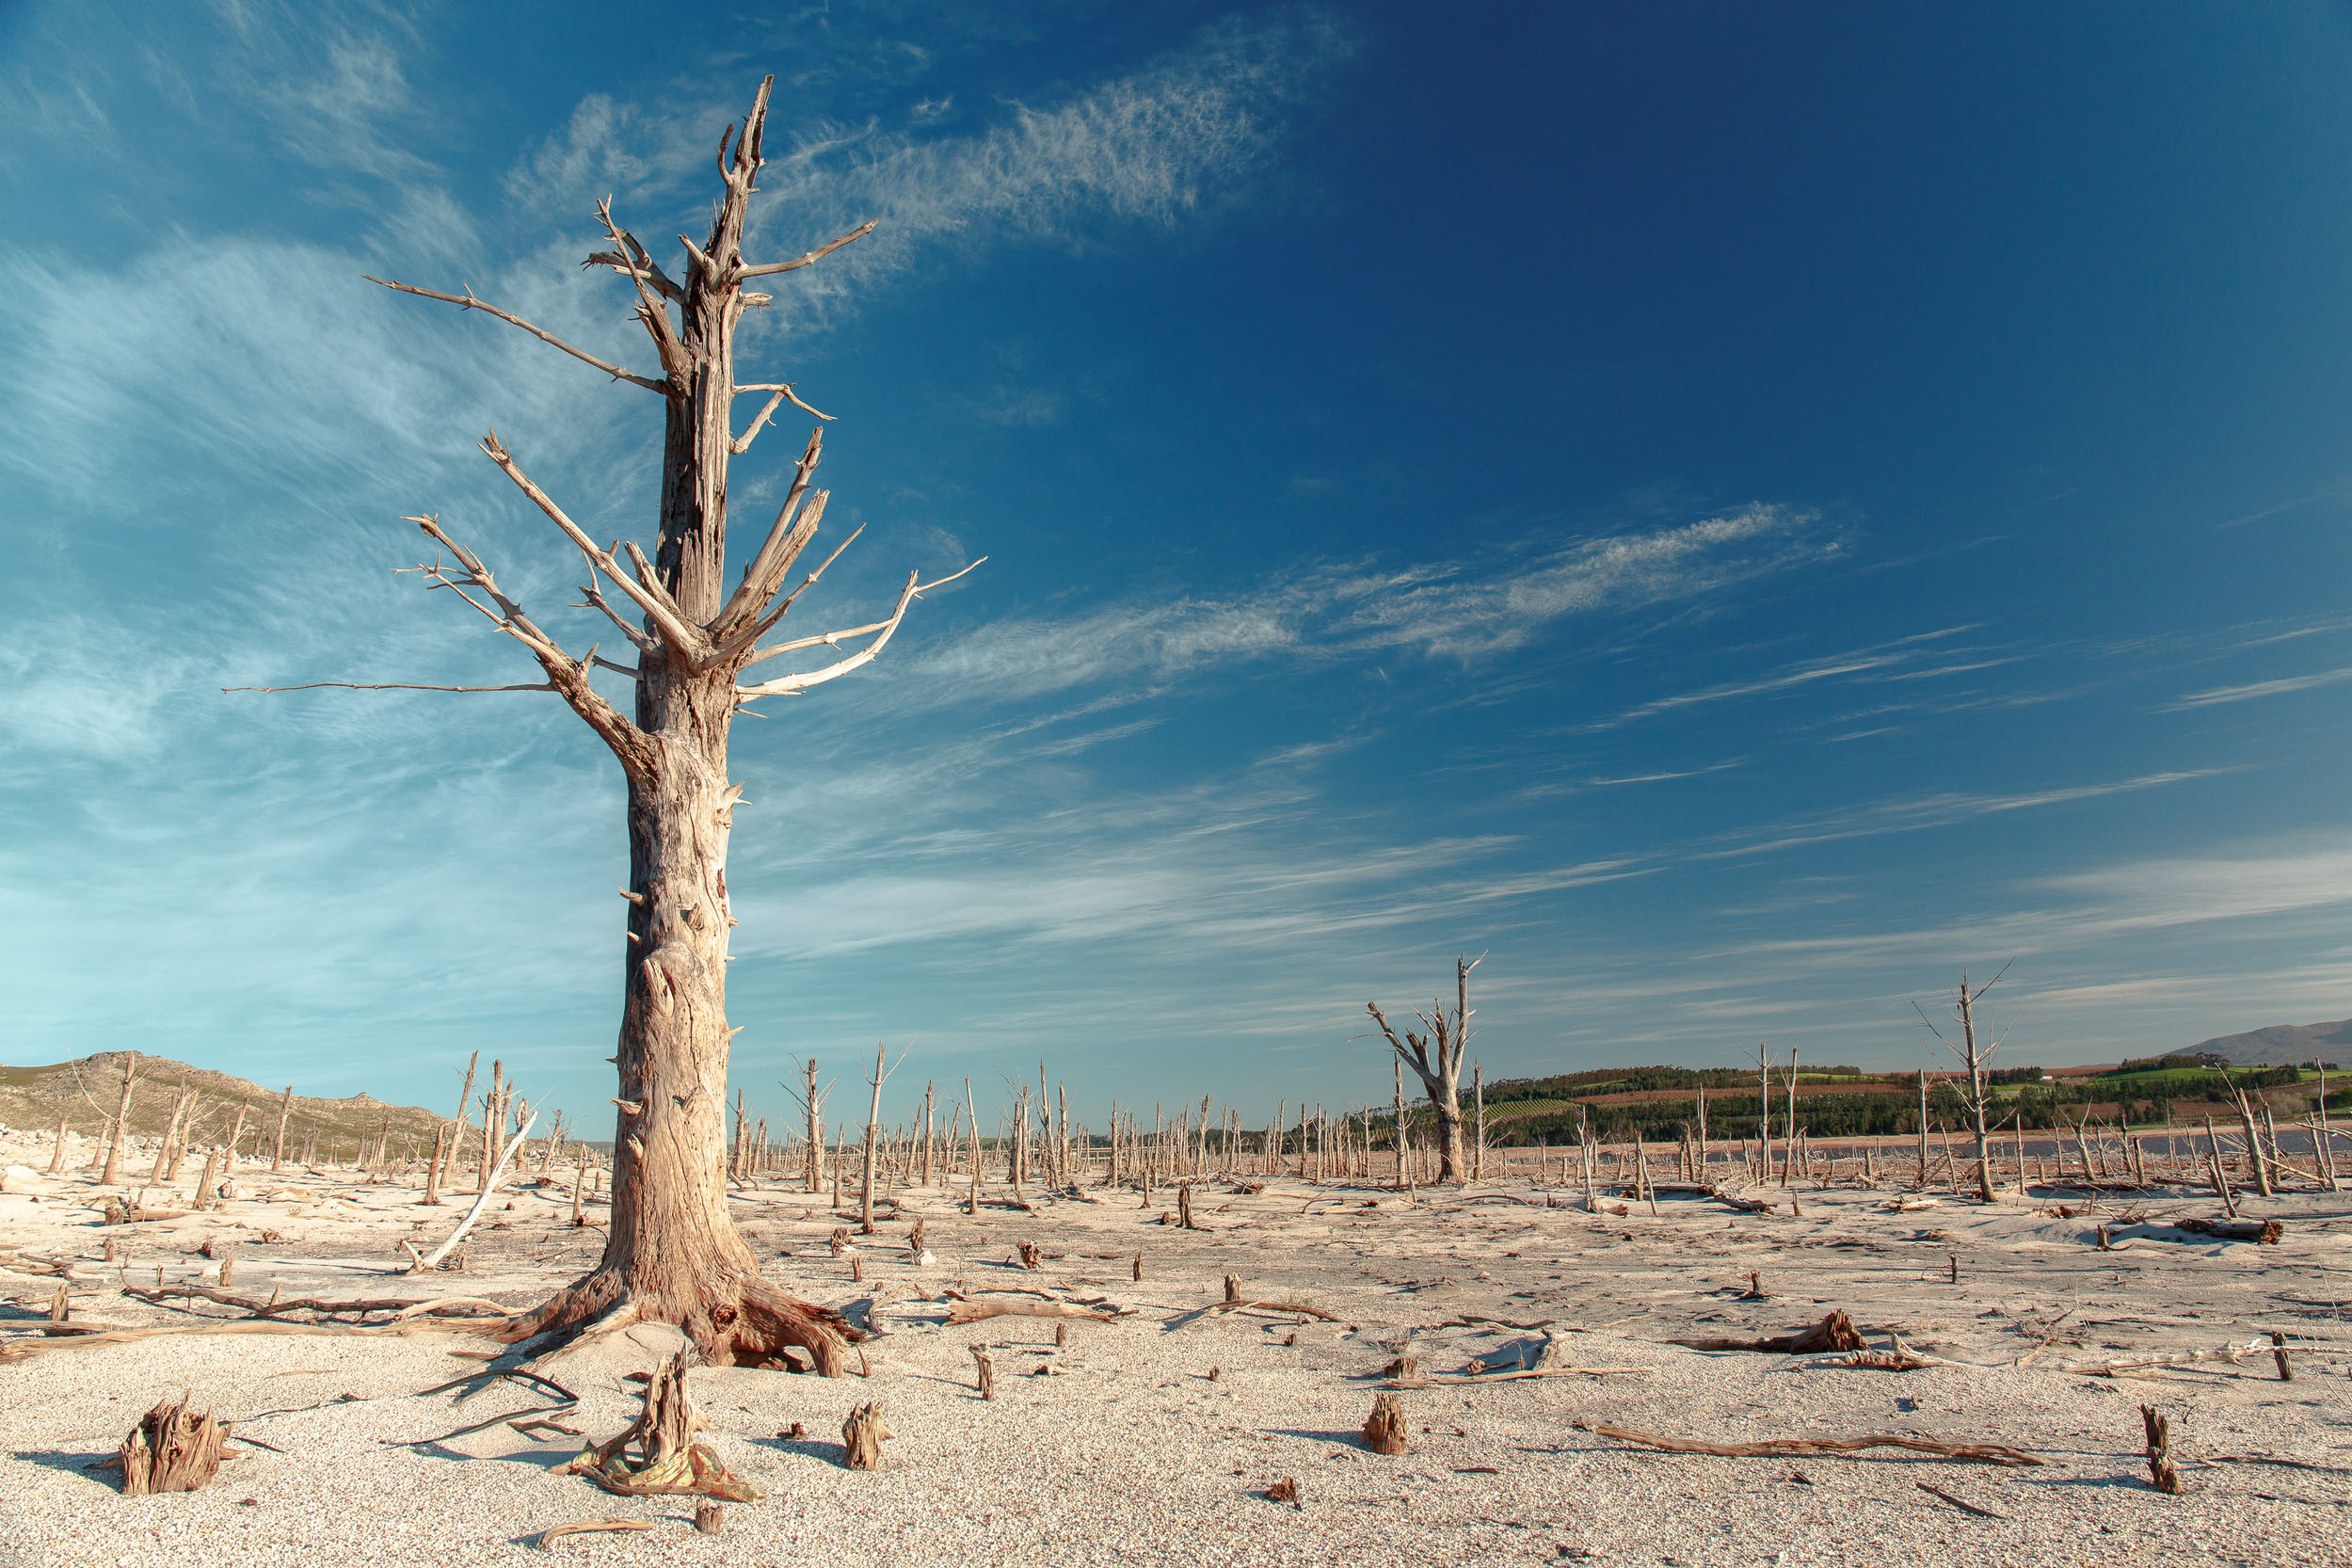 A bleak landscape of dried out, dead trees sticking out of what looks like a reservoir bed. The sky is blue with very few high clouds, and there is a large tree in the foreground.